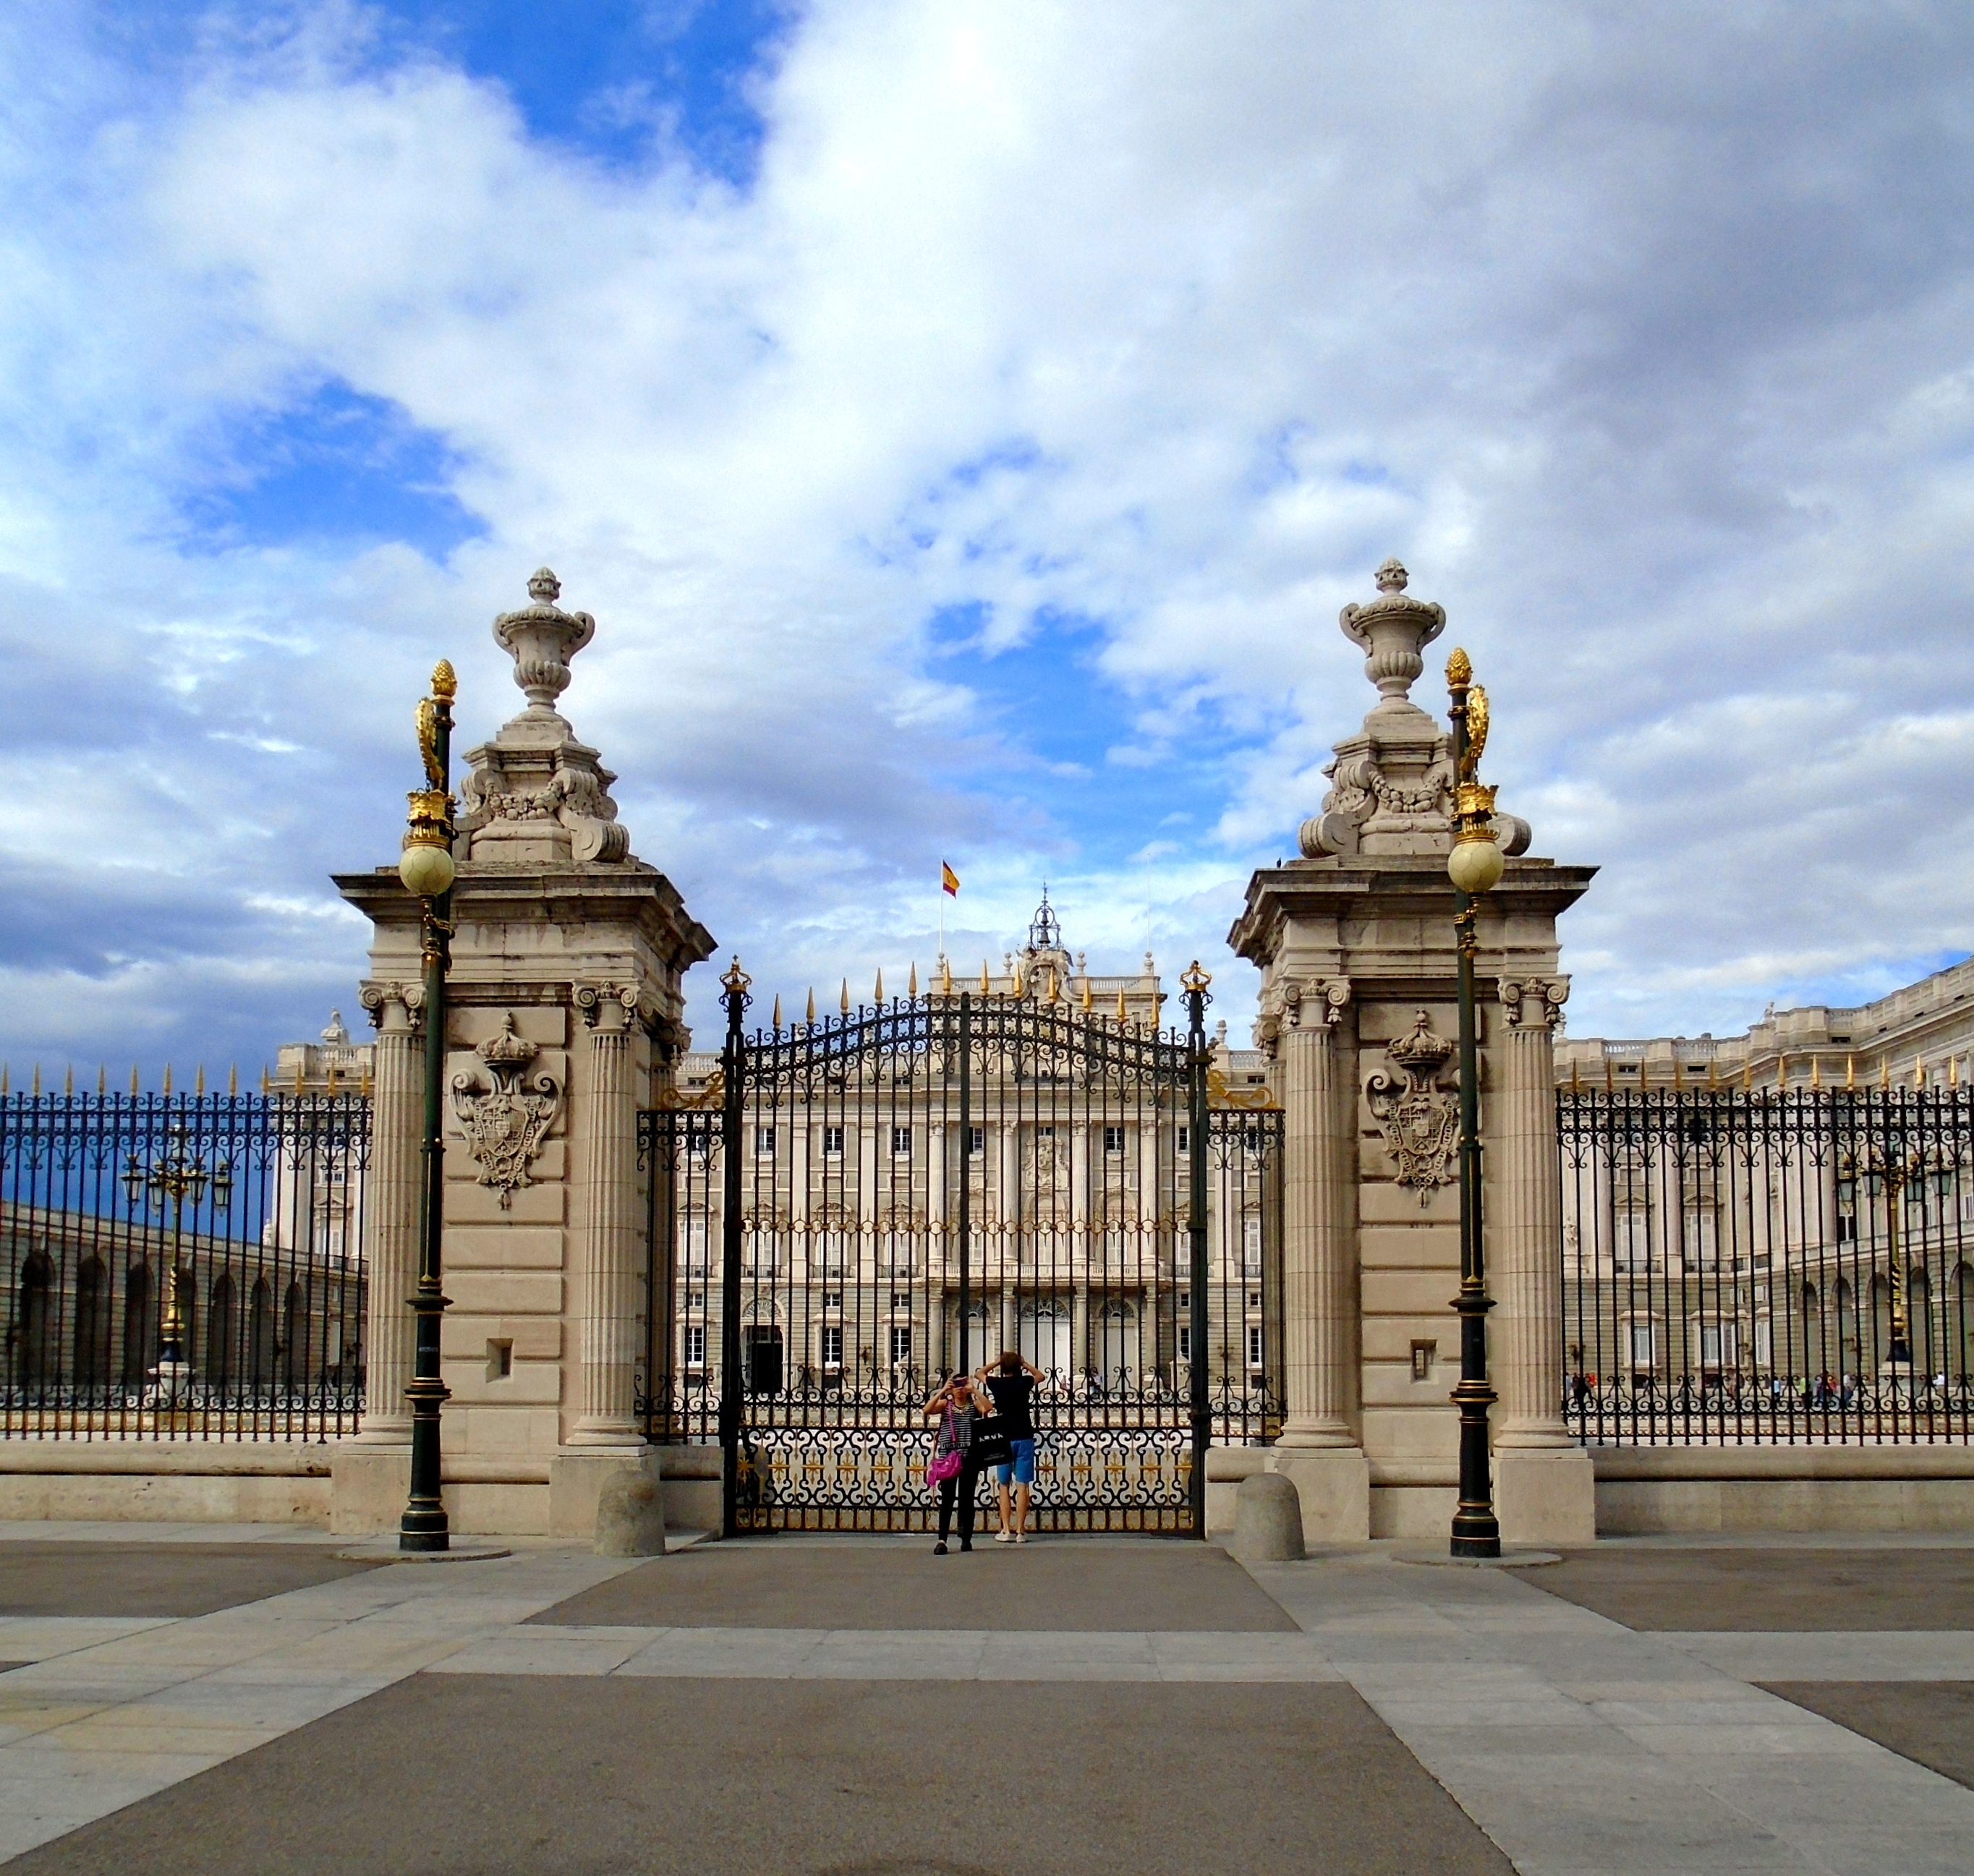 The Royal Palace